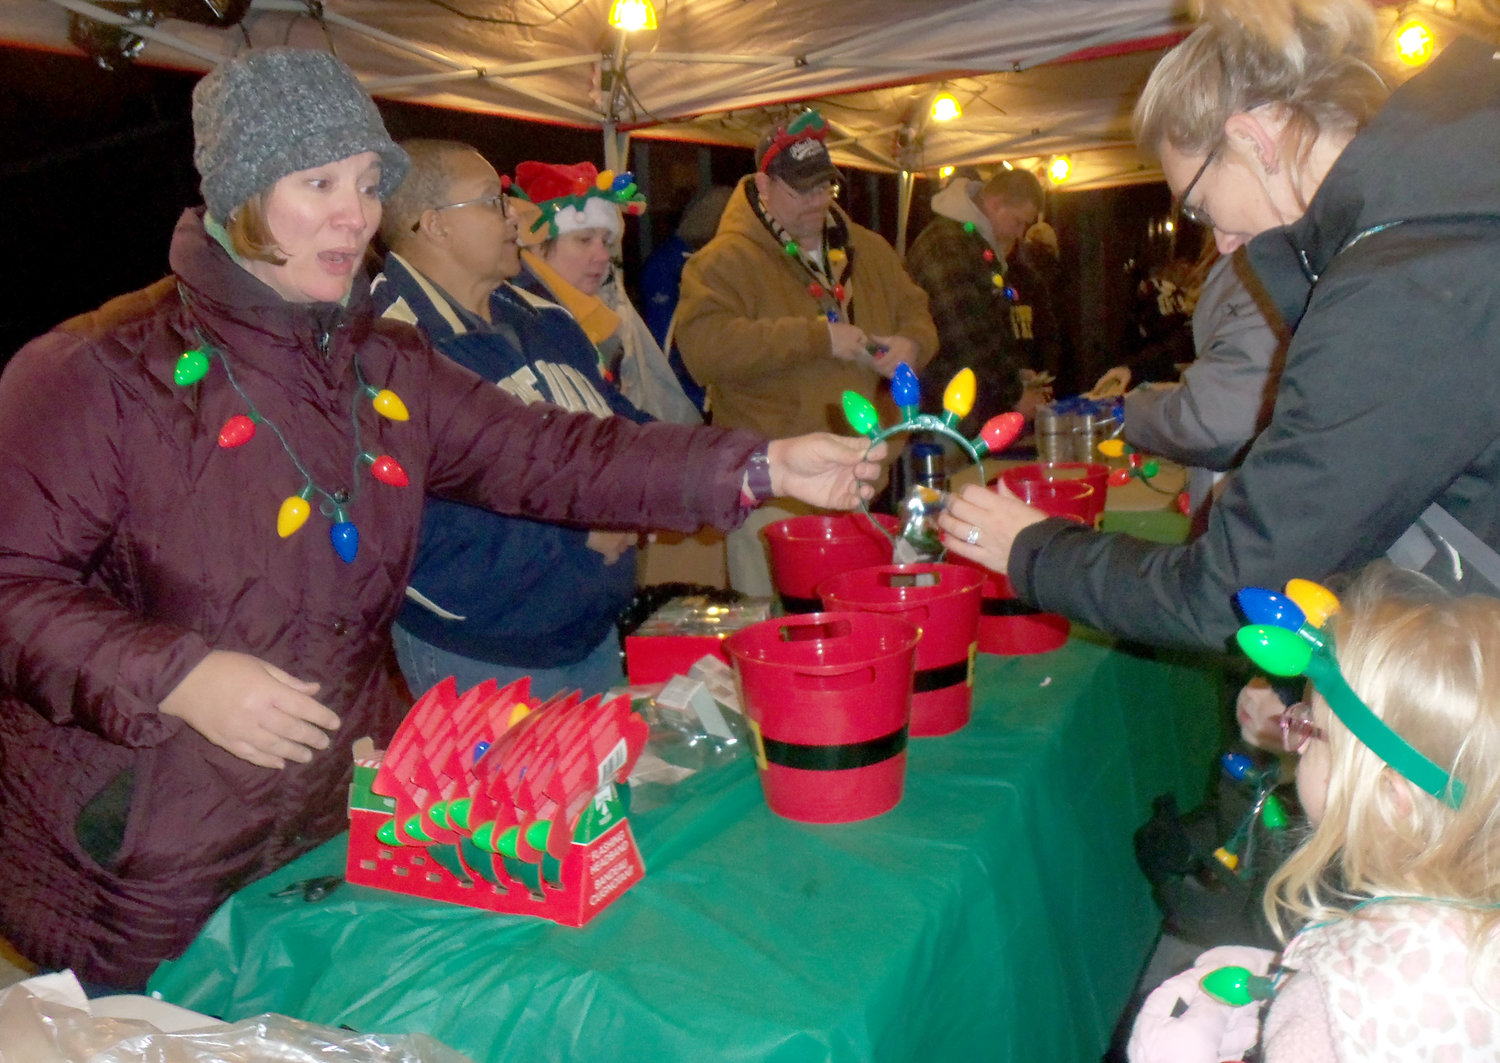 Middletown's Human Relations Commission gave out more than 700 festive headgear and necklace sets for free at the borough tree-lighting ceremony Saturday, Nov. 30.